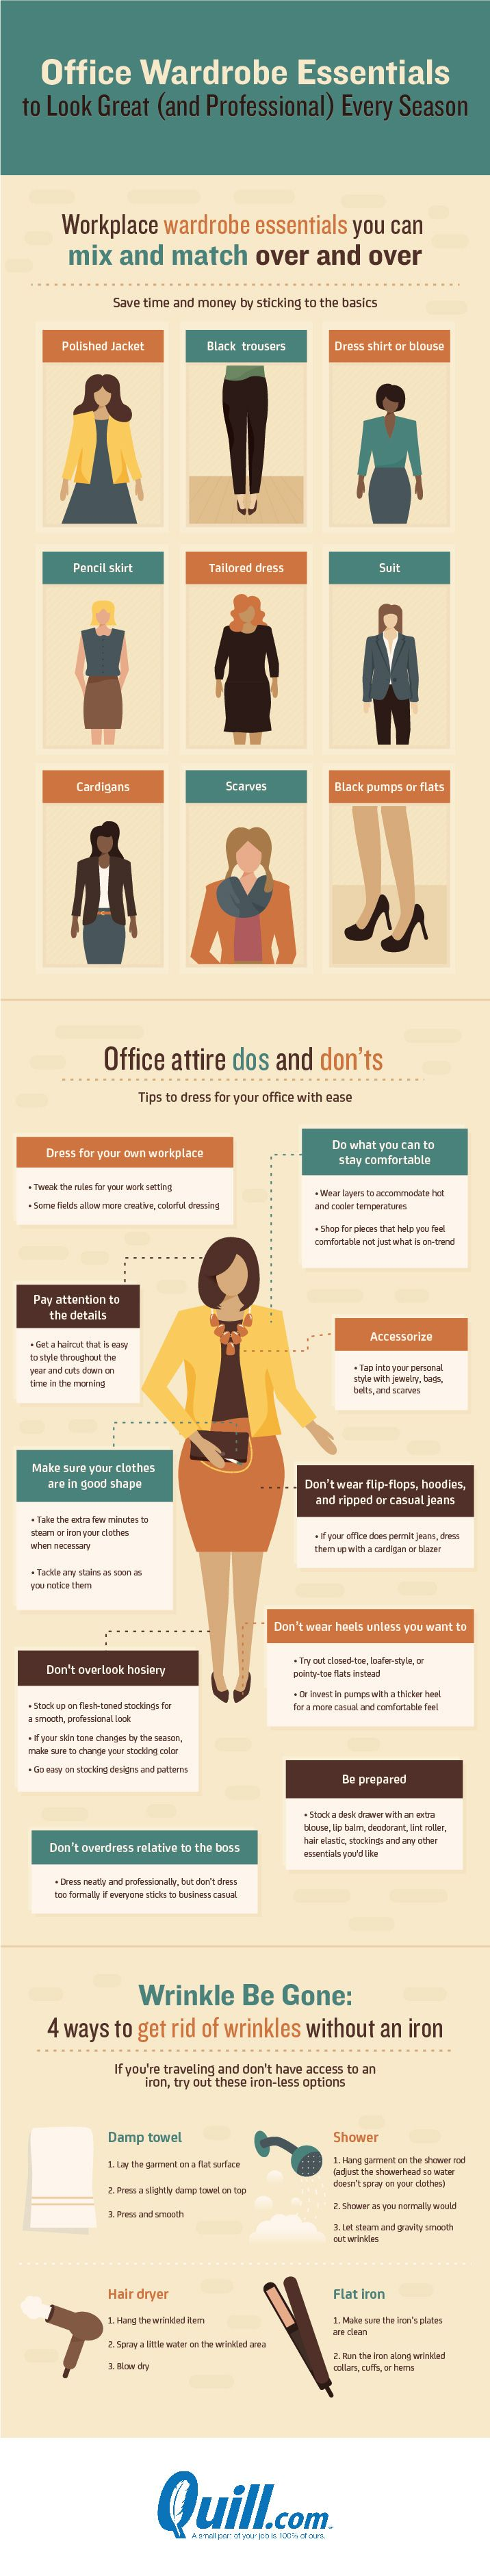 Office Wardrobe Essentials To Look Great (And Professional) Every Season #Infographic #Career